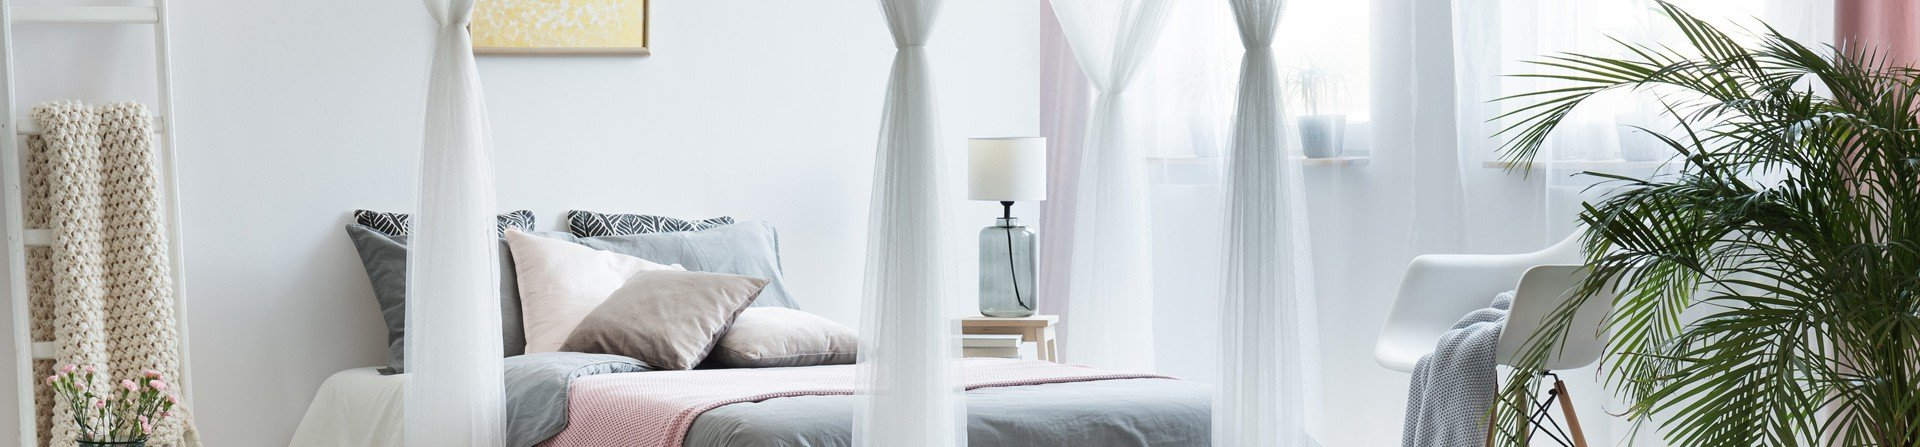 Deluxe Style Box Mosquito Nets